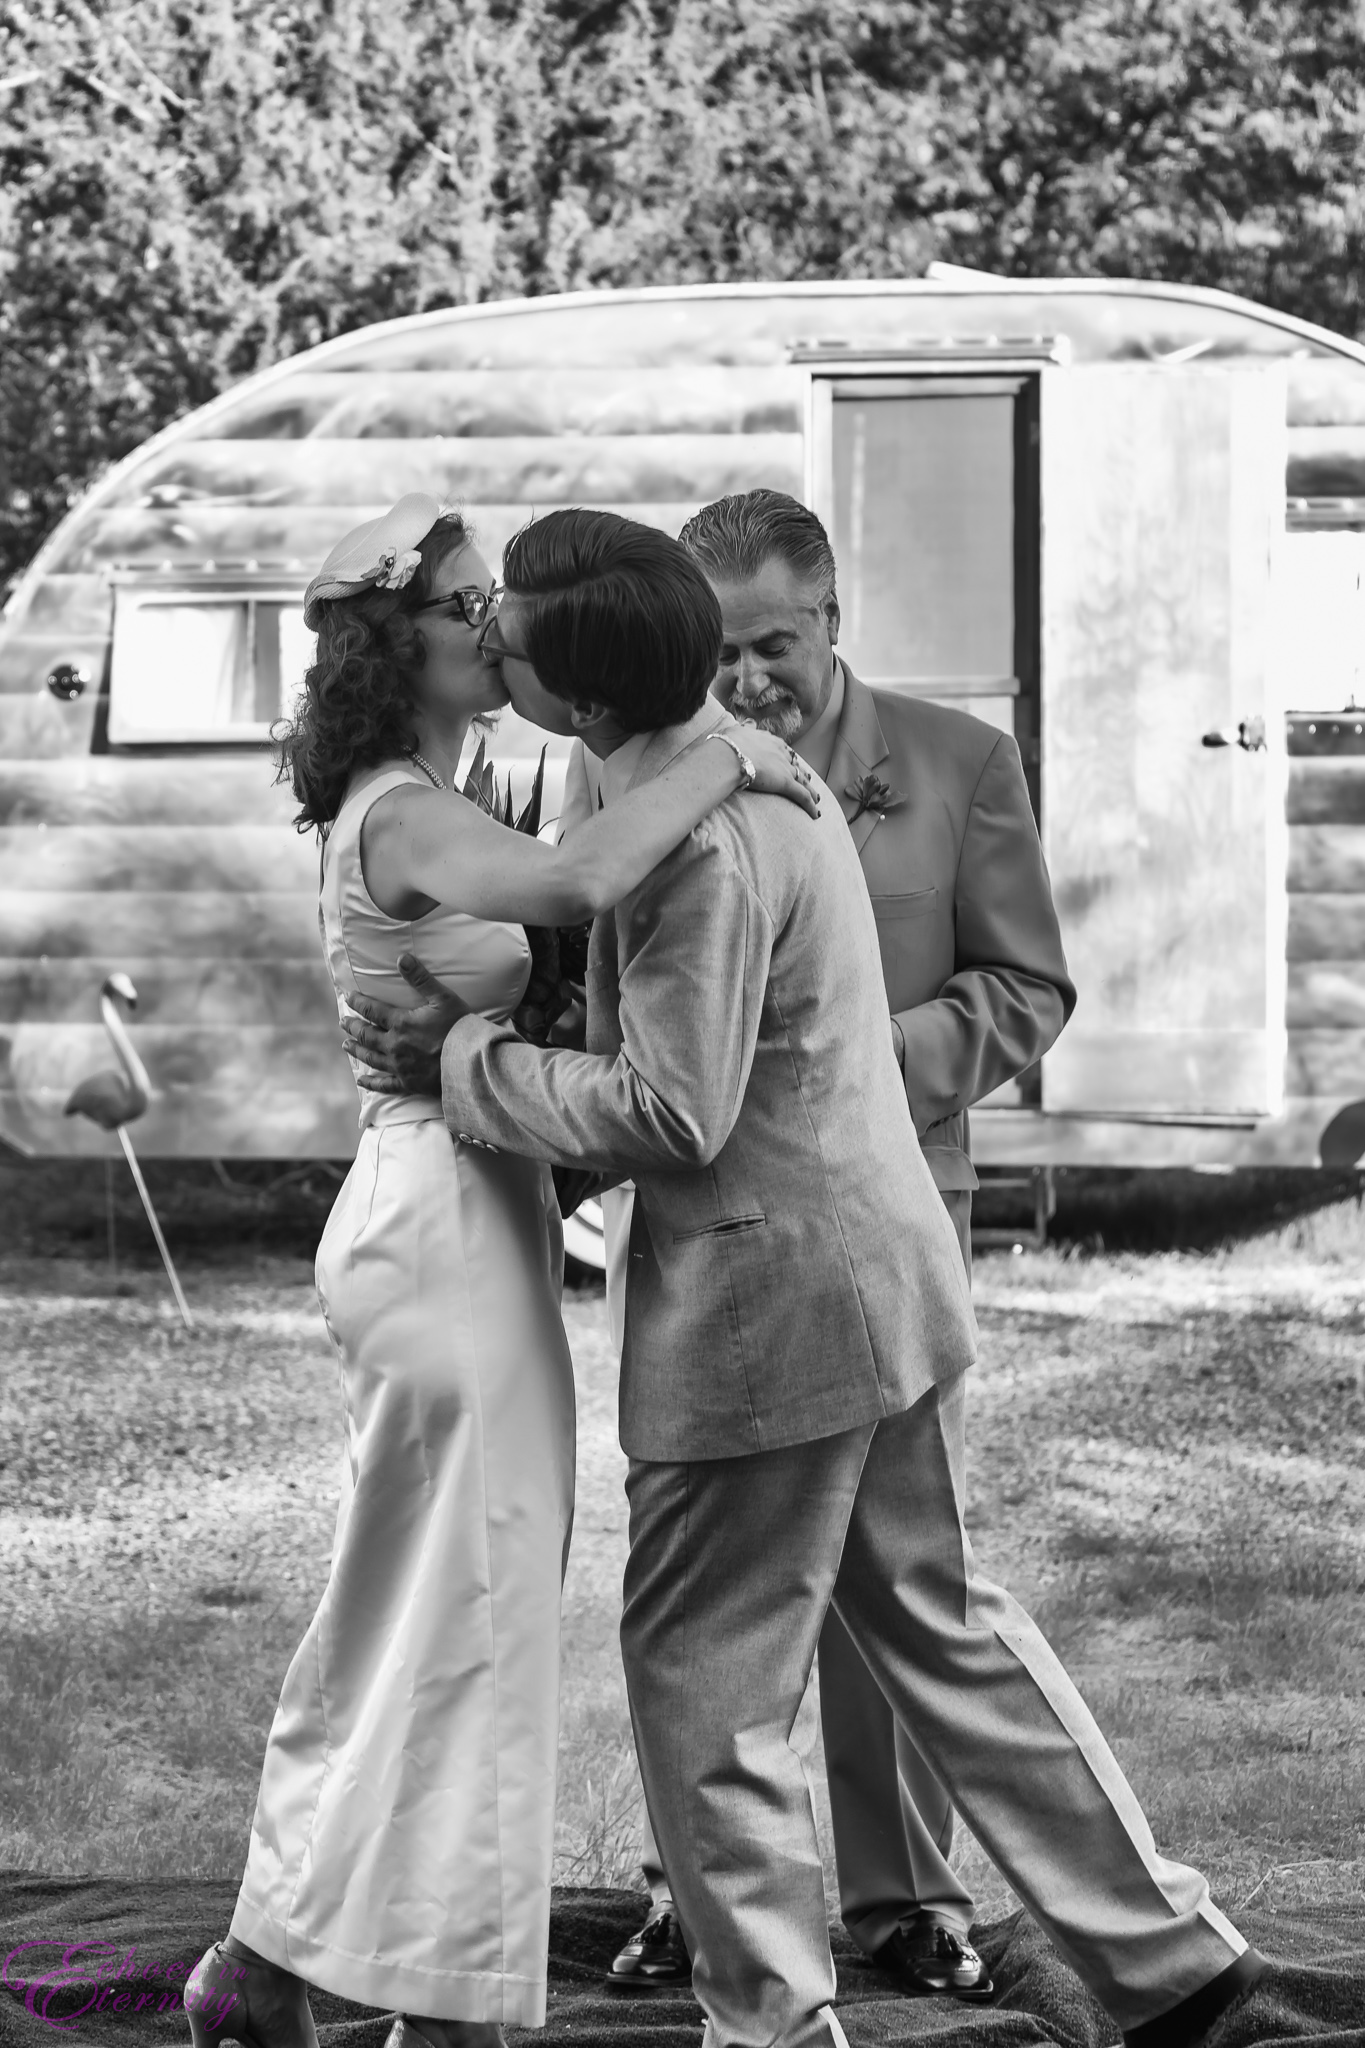 Sarah and Keith 1950s wedding 16.jpg